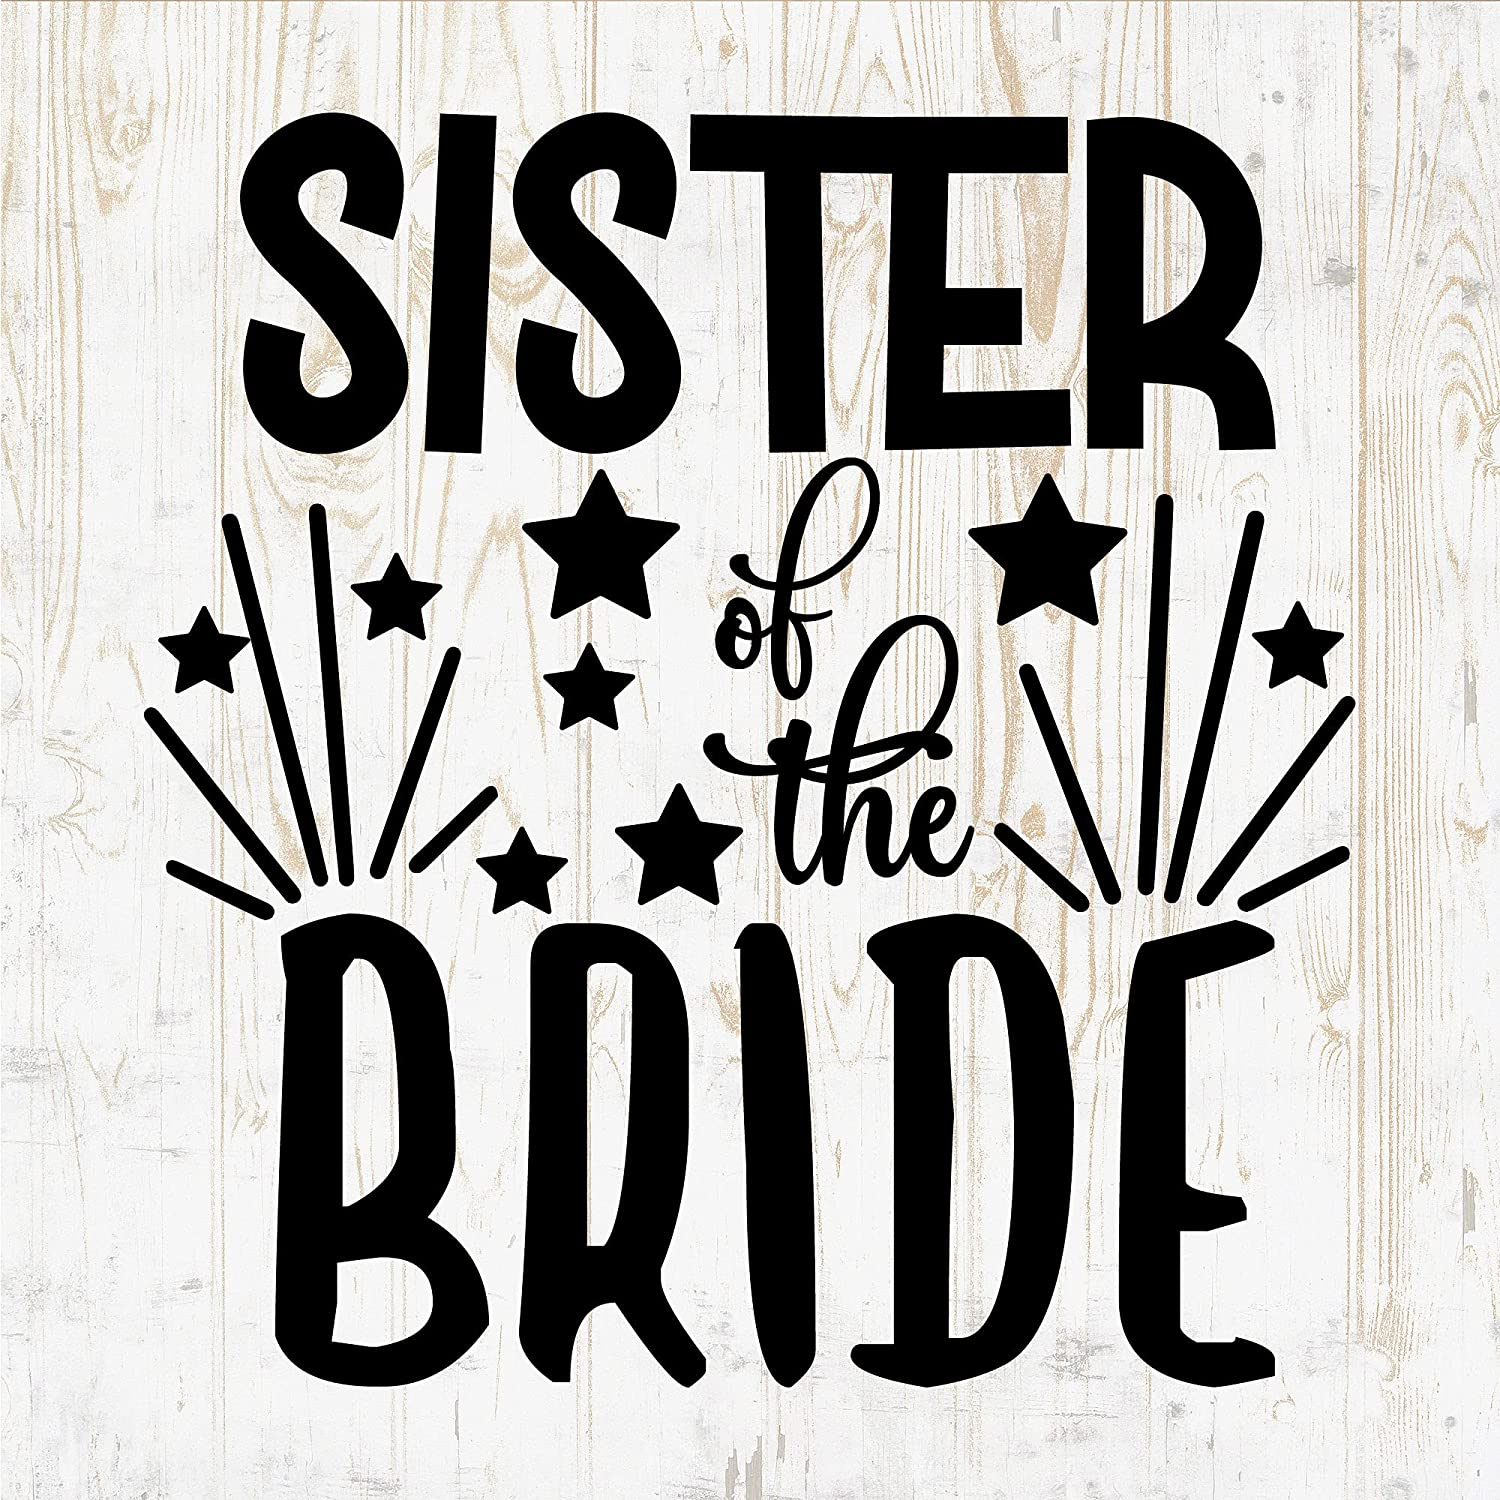 6 in Sister of The Bride Sticker latest P Bottle Max 55% OFF - Wall Decal Vinyl for